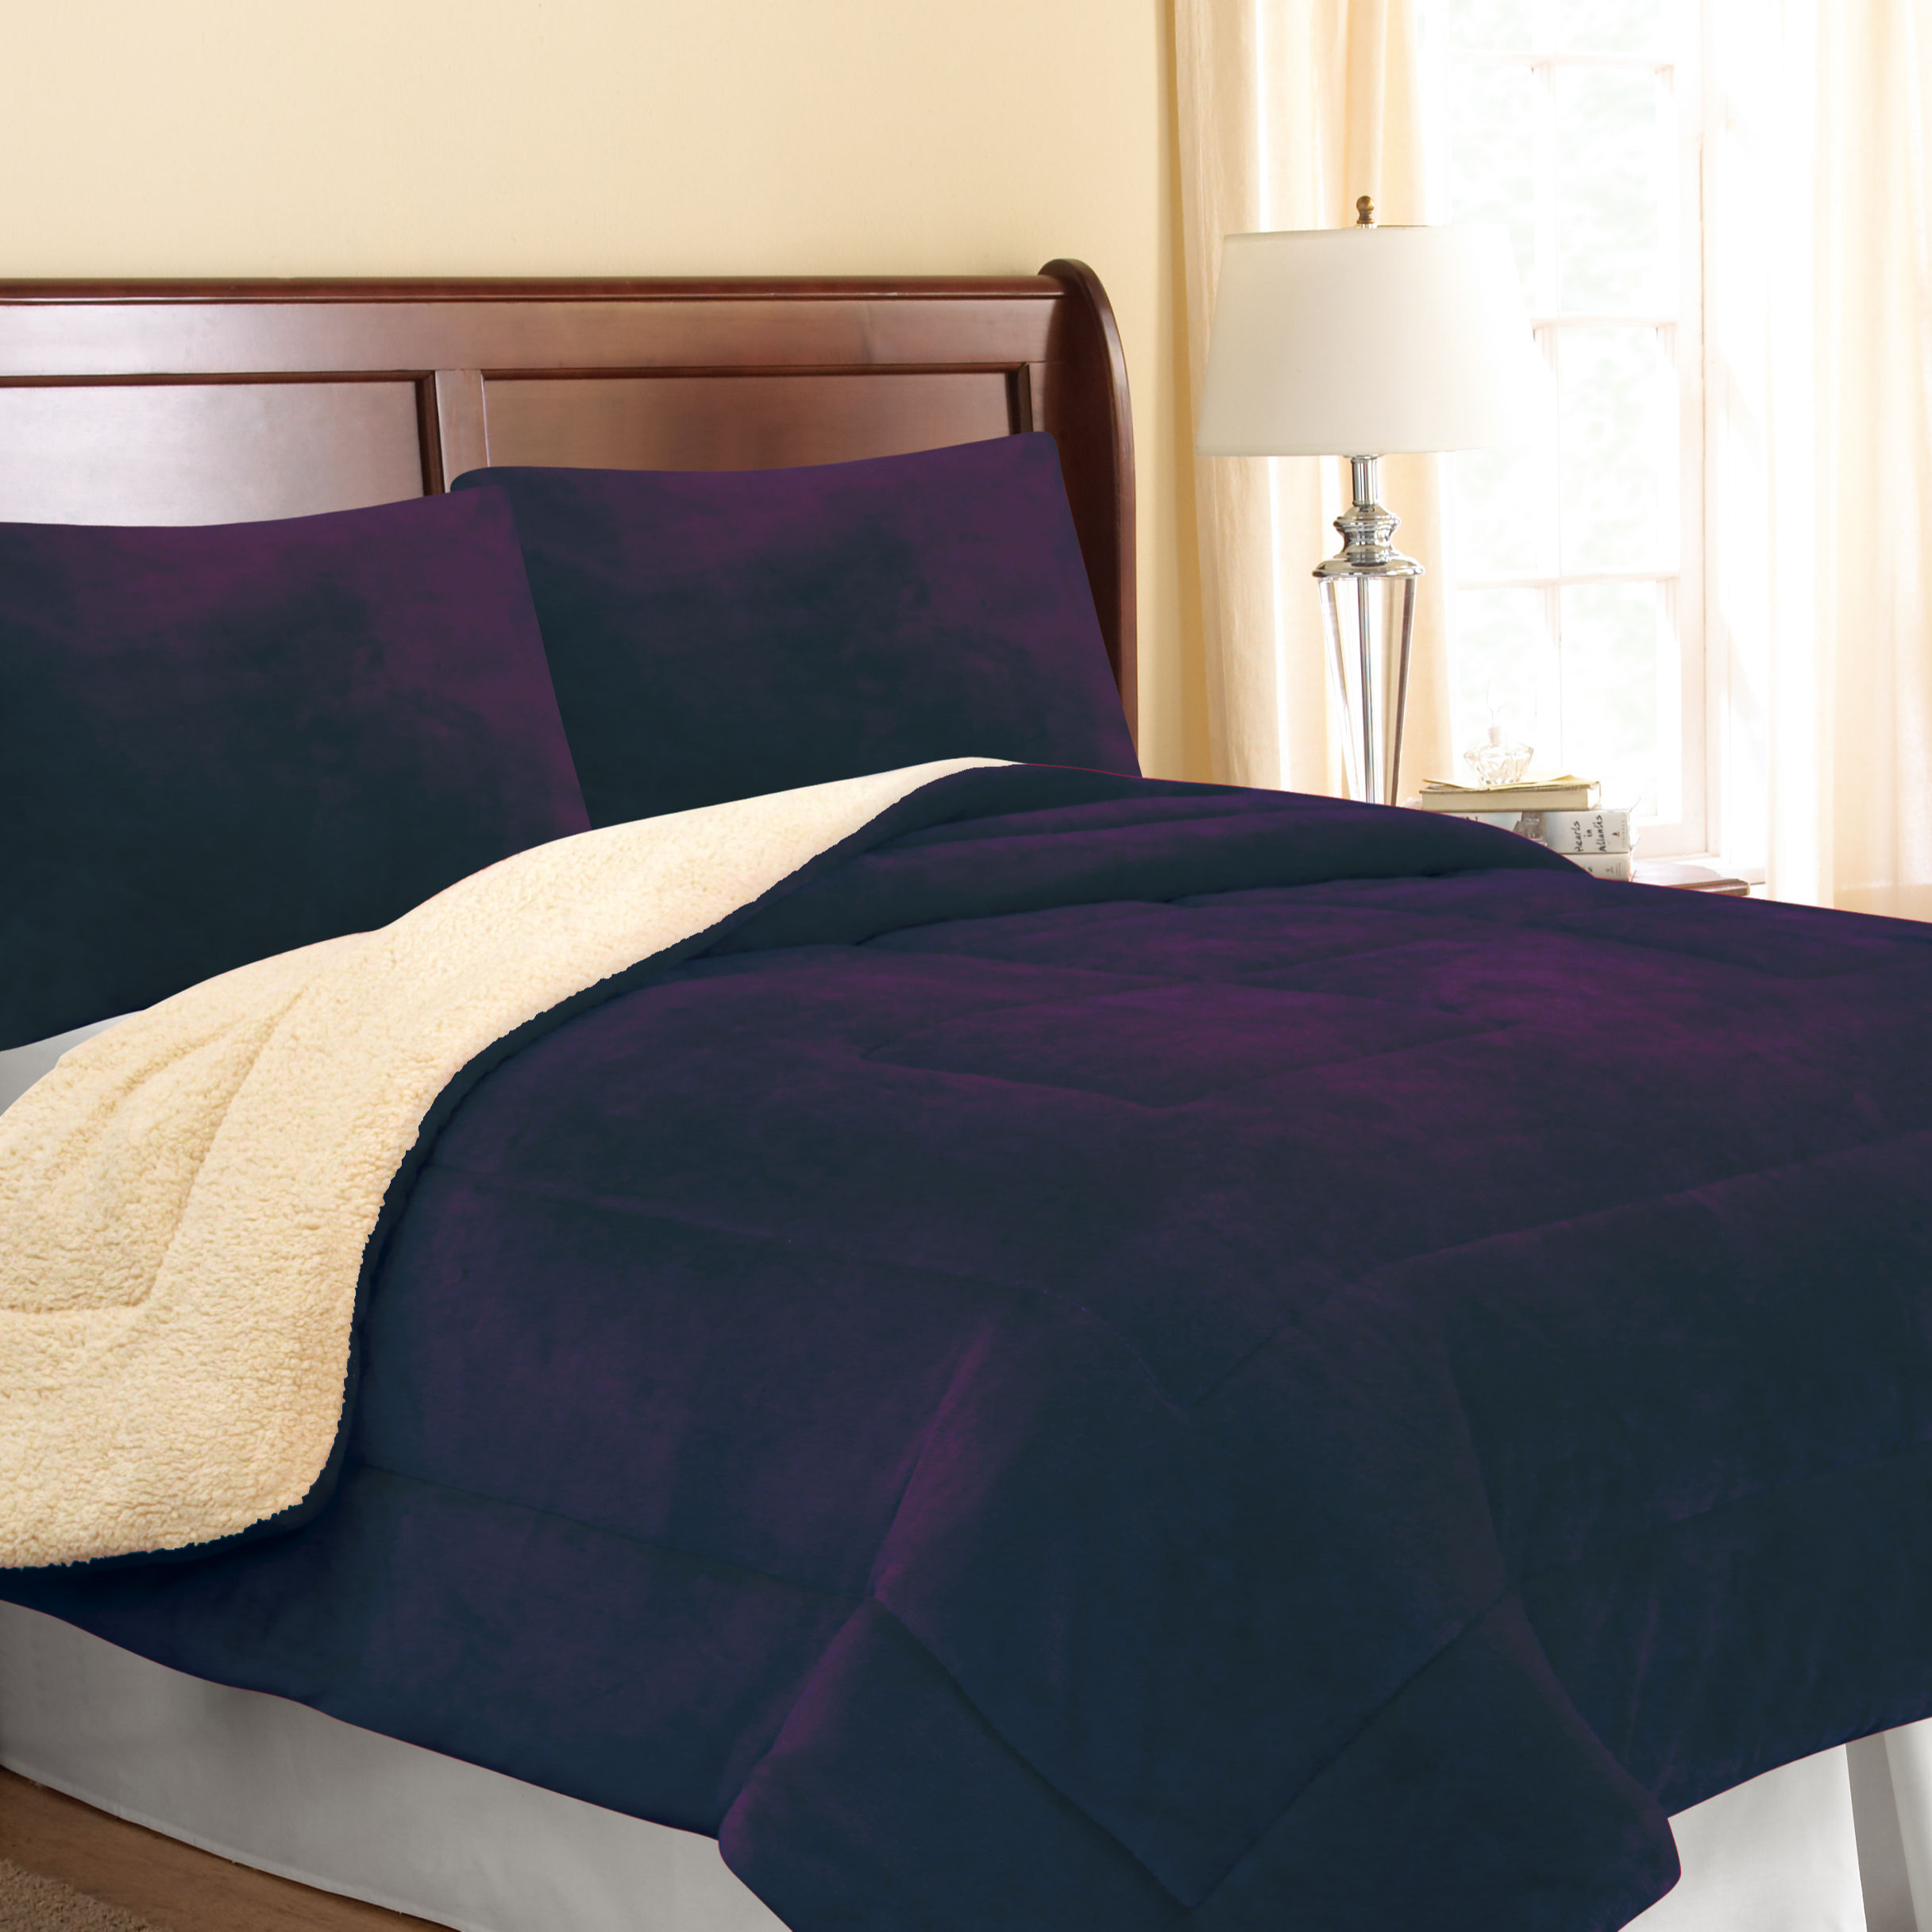 Solid Color 3pcs Flannel Sherpa High Quality Verifiable Borrego Comforter